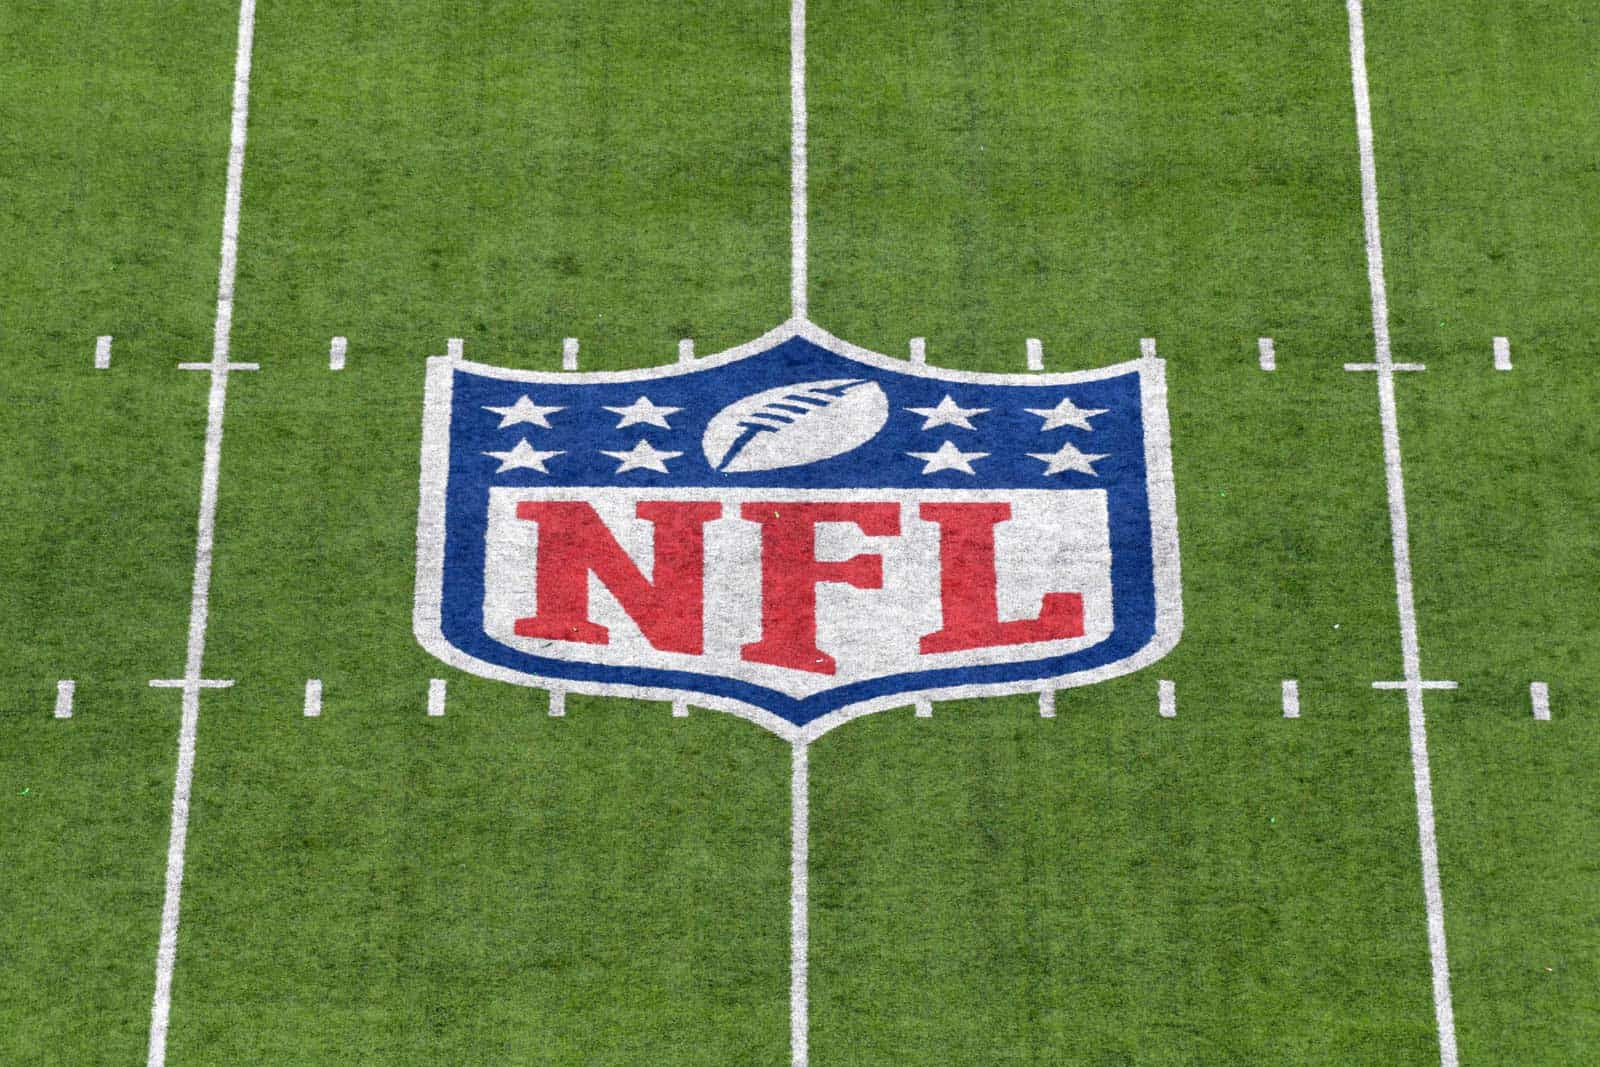 NFL Playoff Schedule 2018-2019